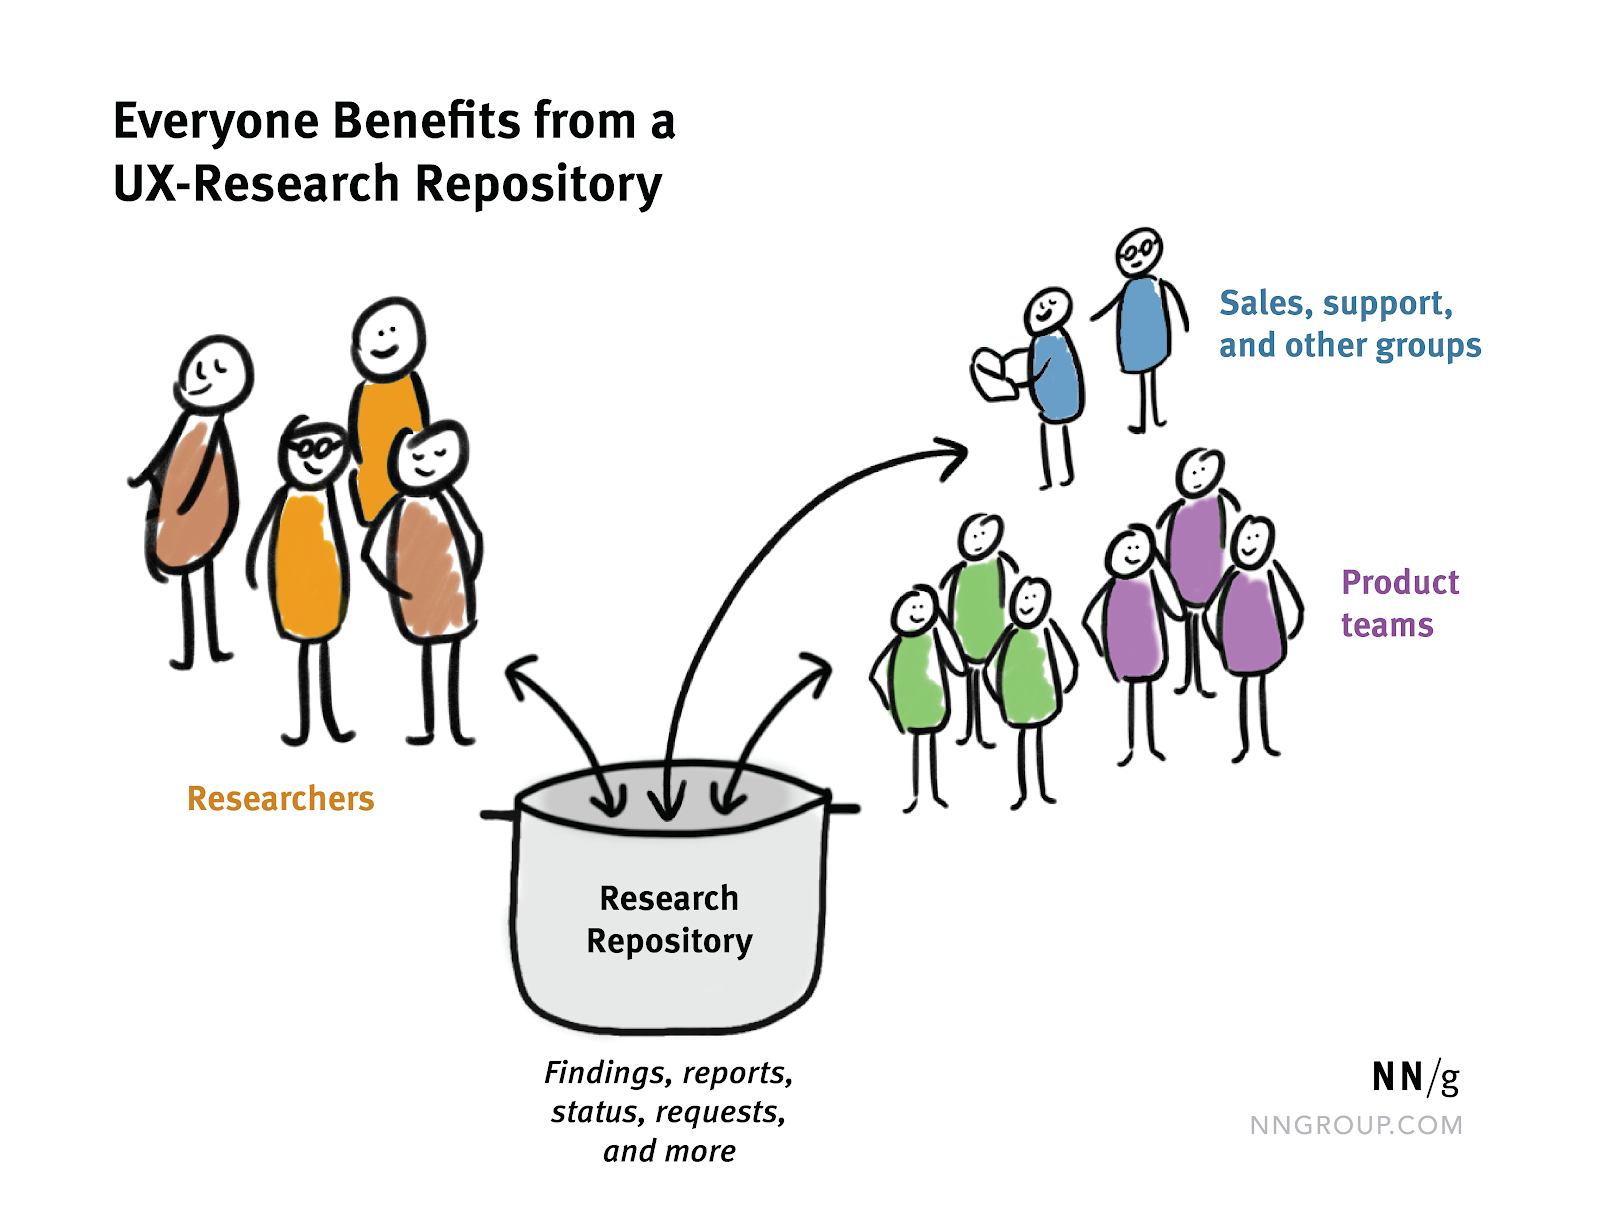 Research Repository: Researchers, Sales and support groups, and Product teams all contribute to a research repository with findings, reports, status, requests, and more.